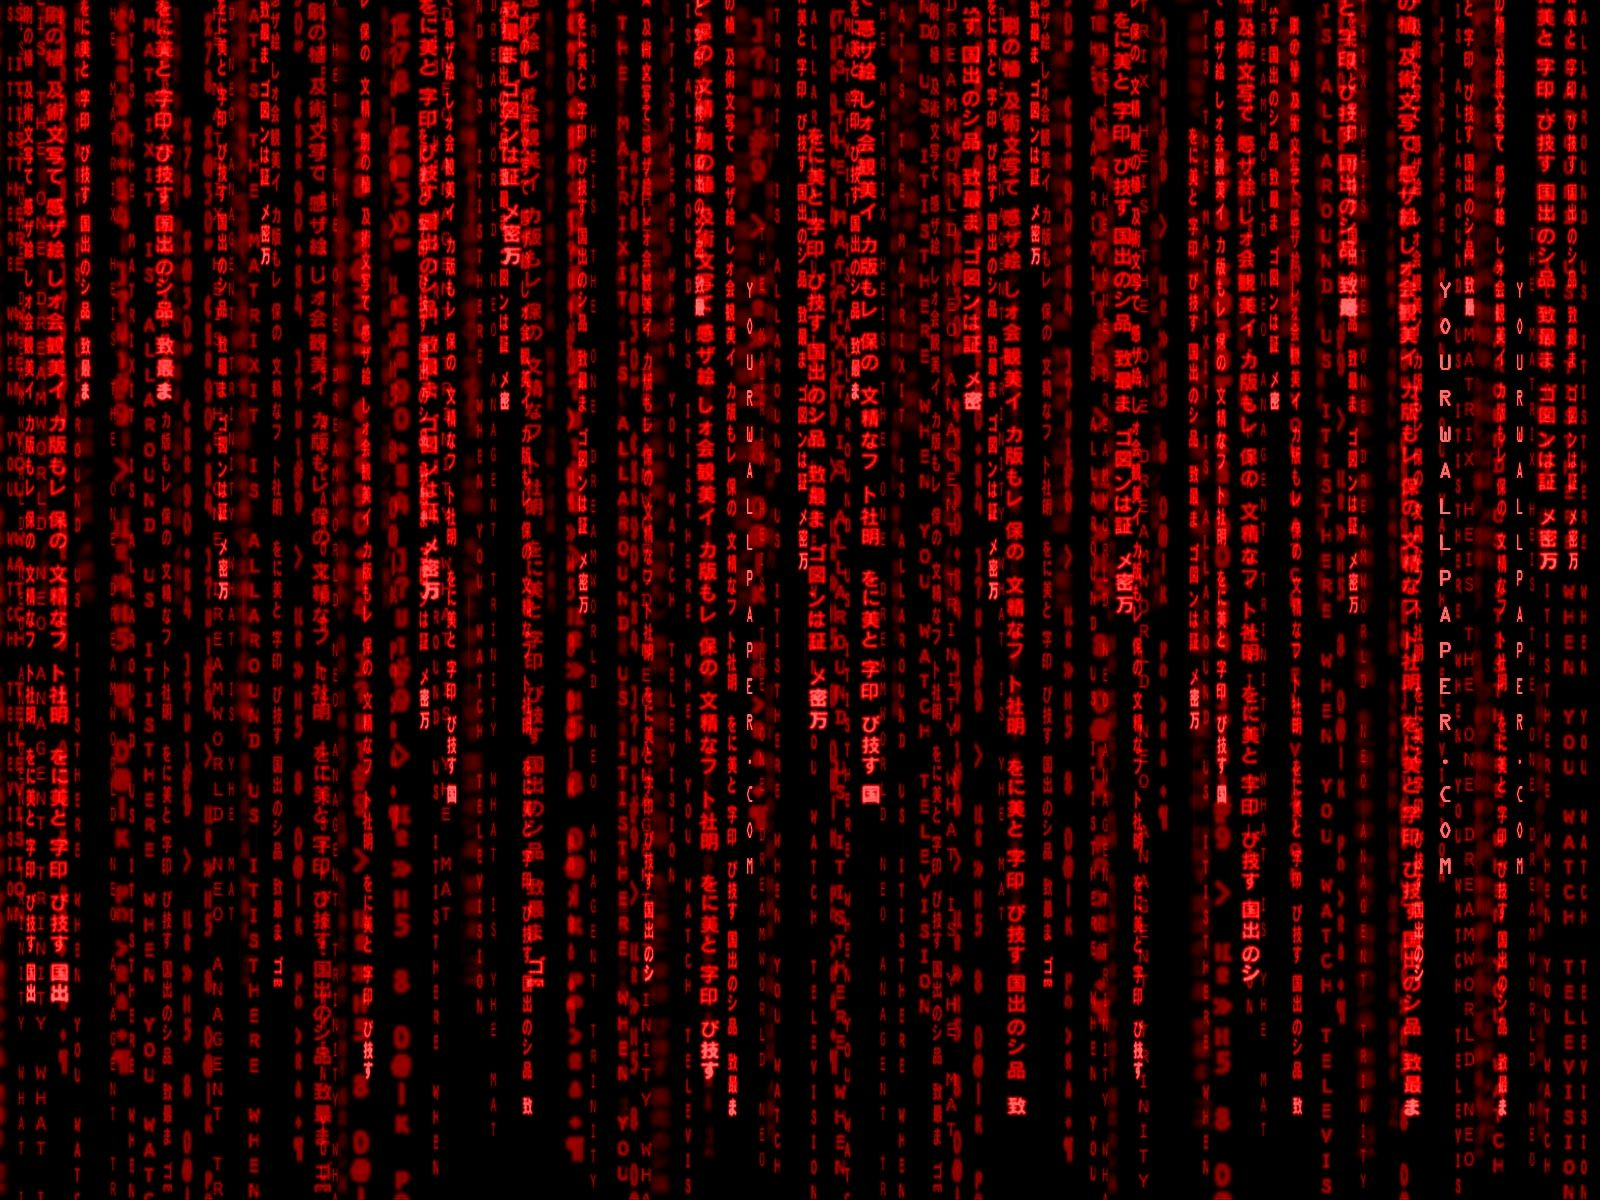 Free Full Screen Fall Wallpaper Download Free Animated Matrix Background Pixelstalk Net